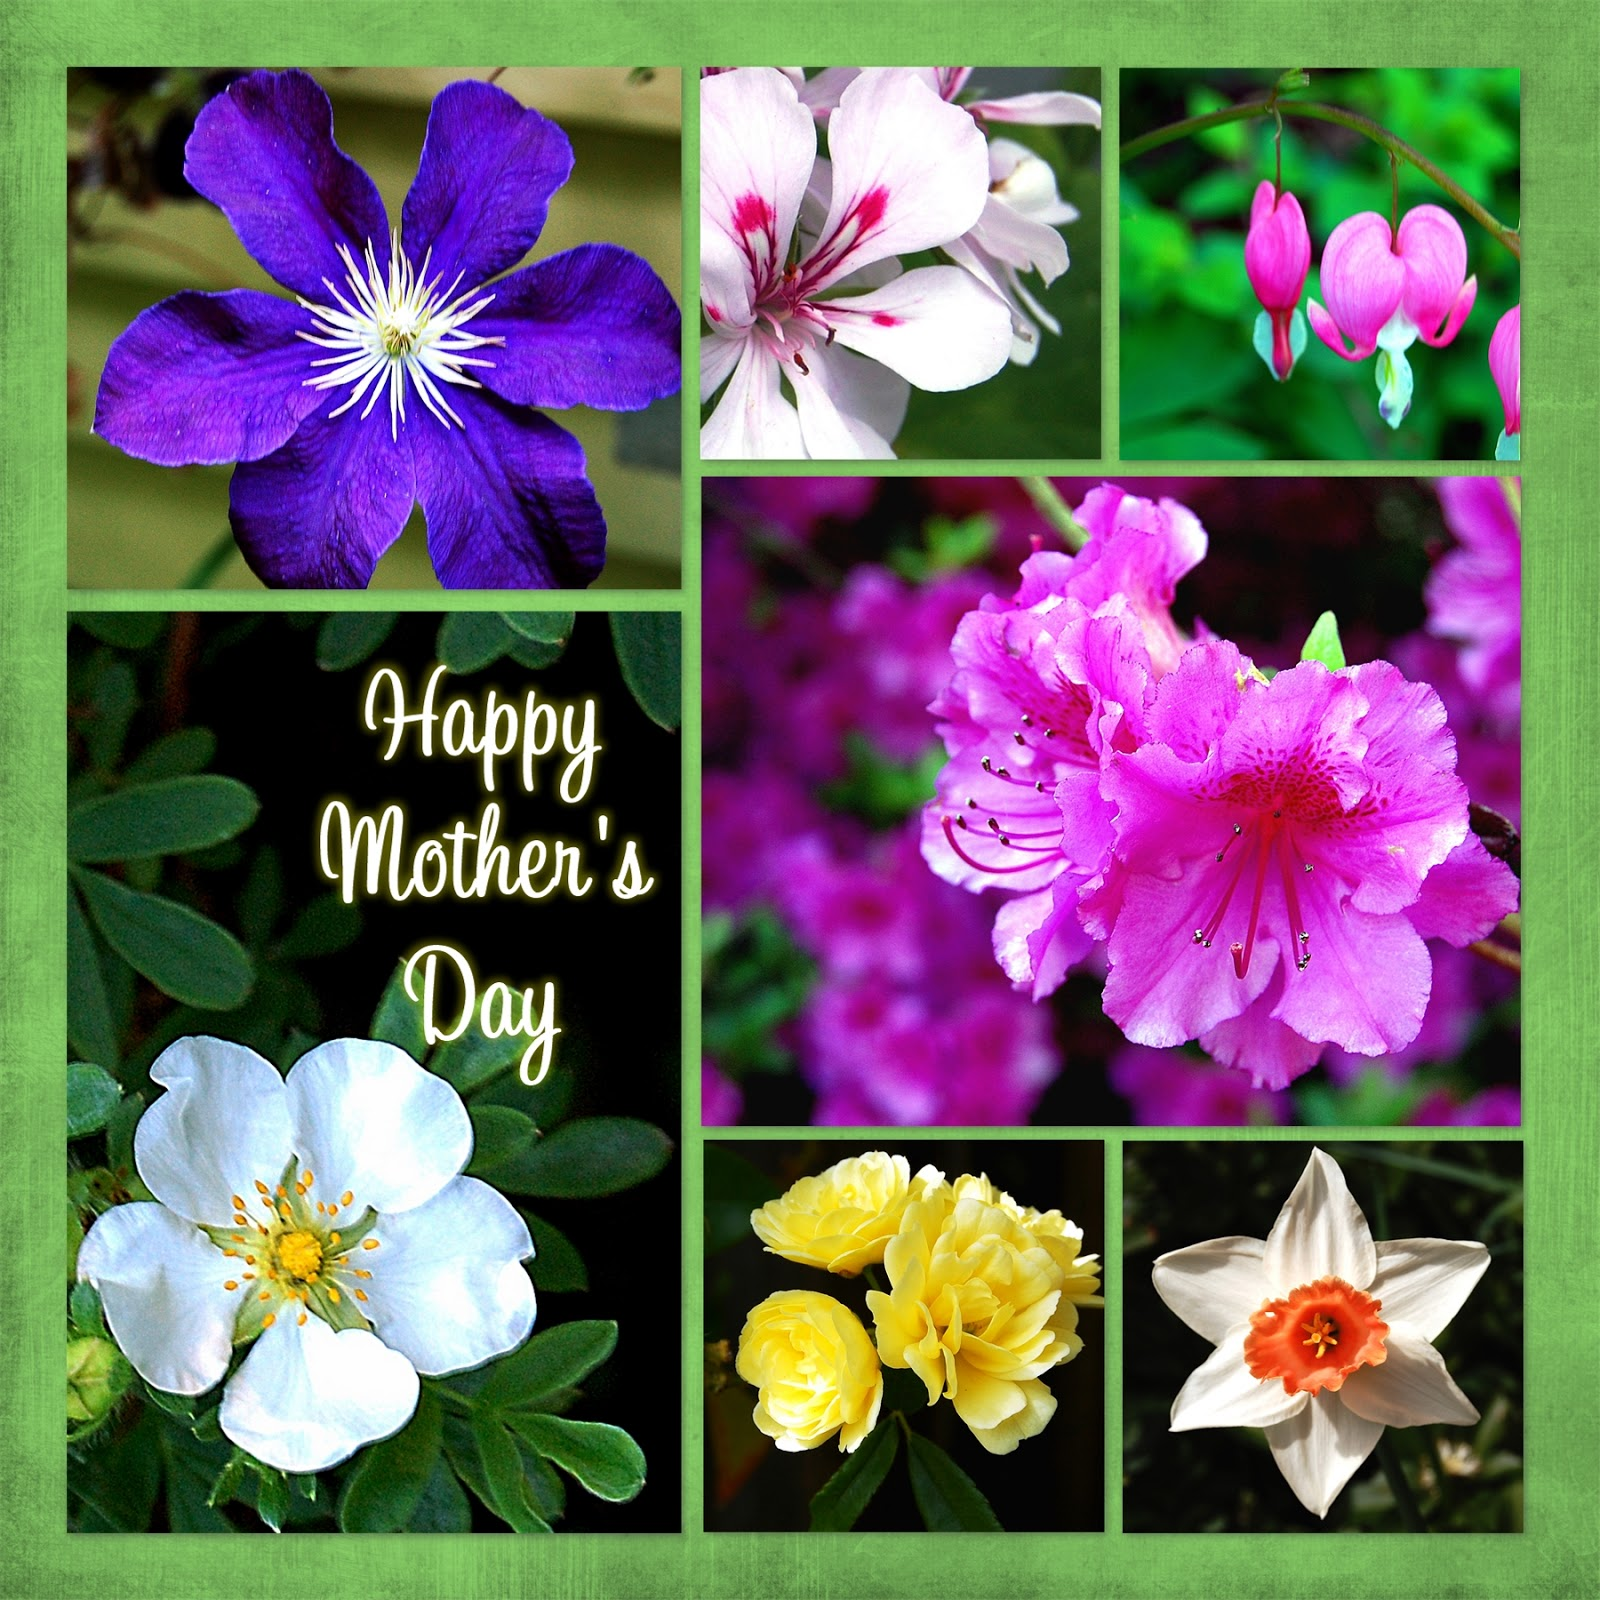 Here Are Some Virtual Flowers For You In Celebration Of Mothers Day I Am Looking Forward To A Nice Spent With Family And